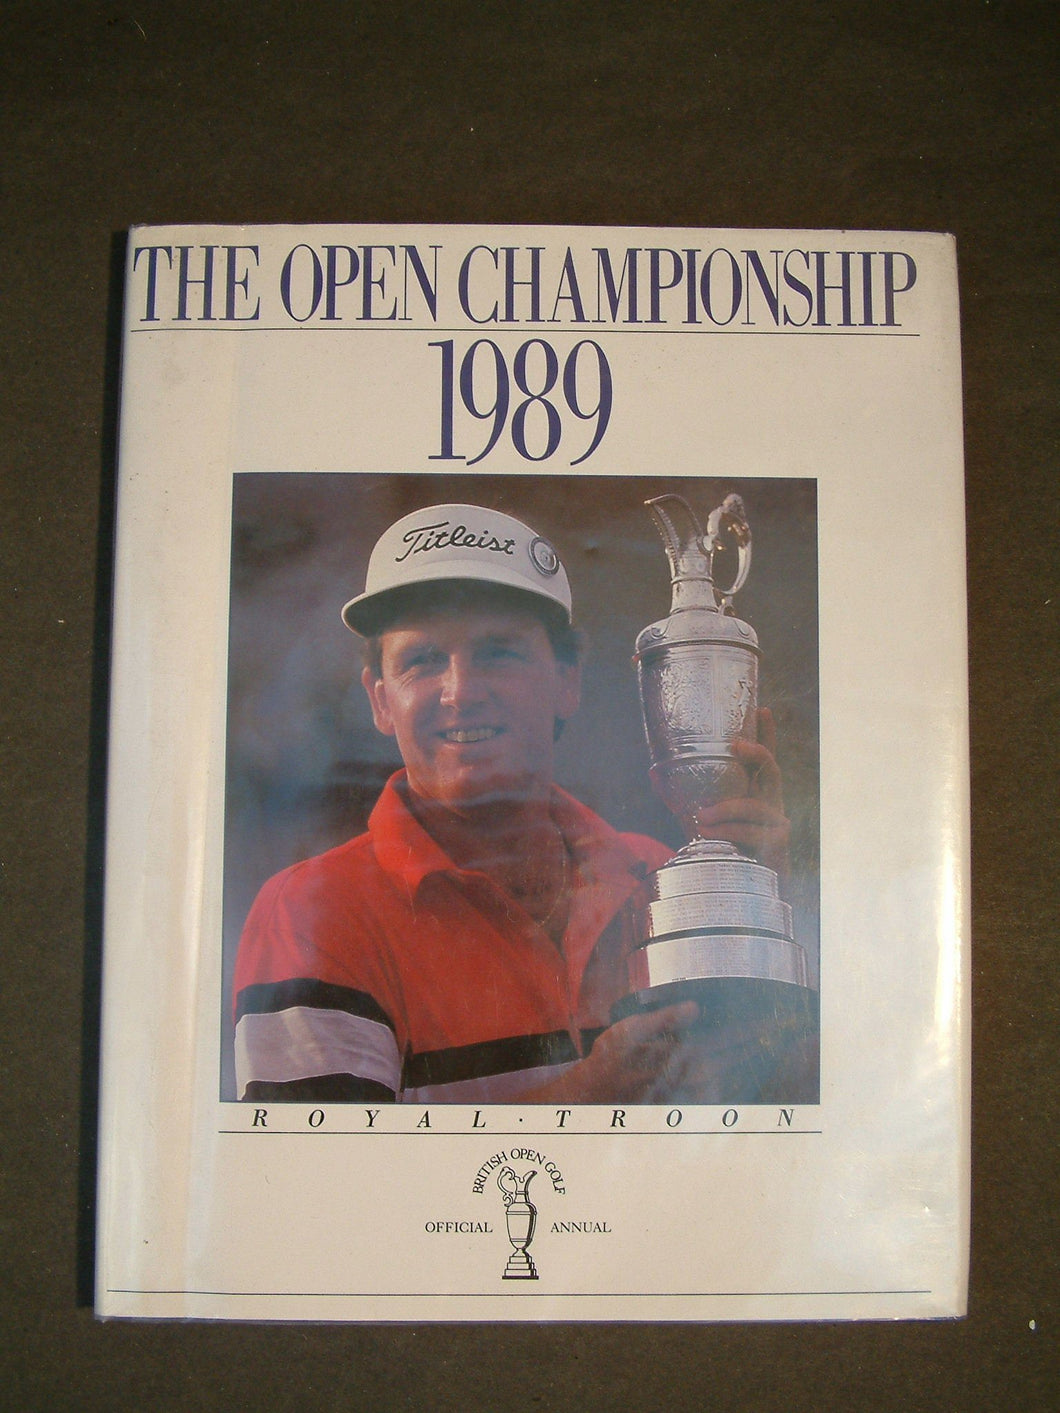 The Open Championship 1989 John Hopkins and Bev Norwood